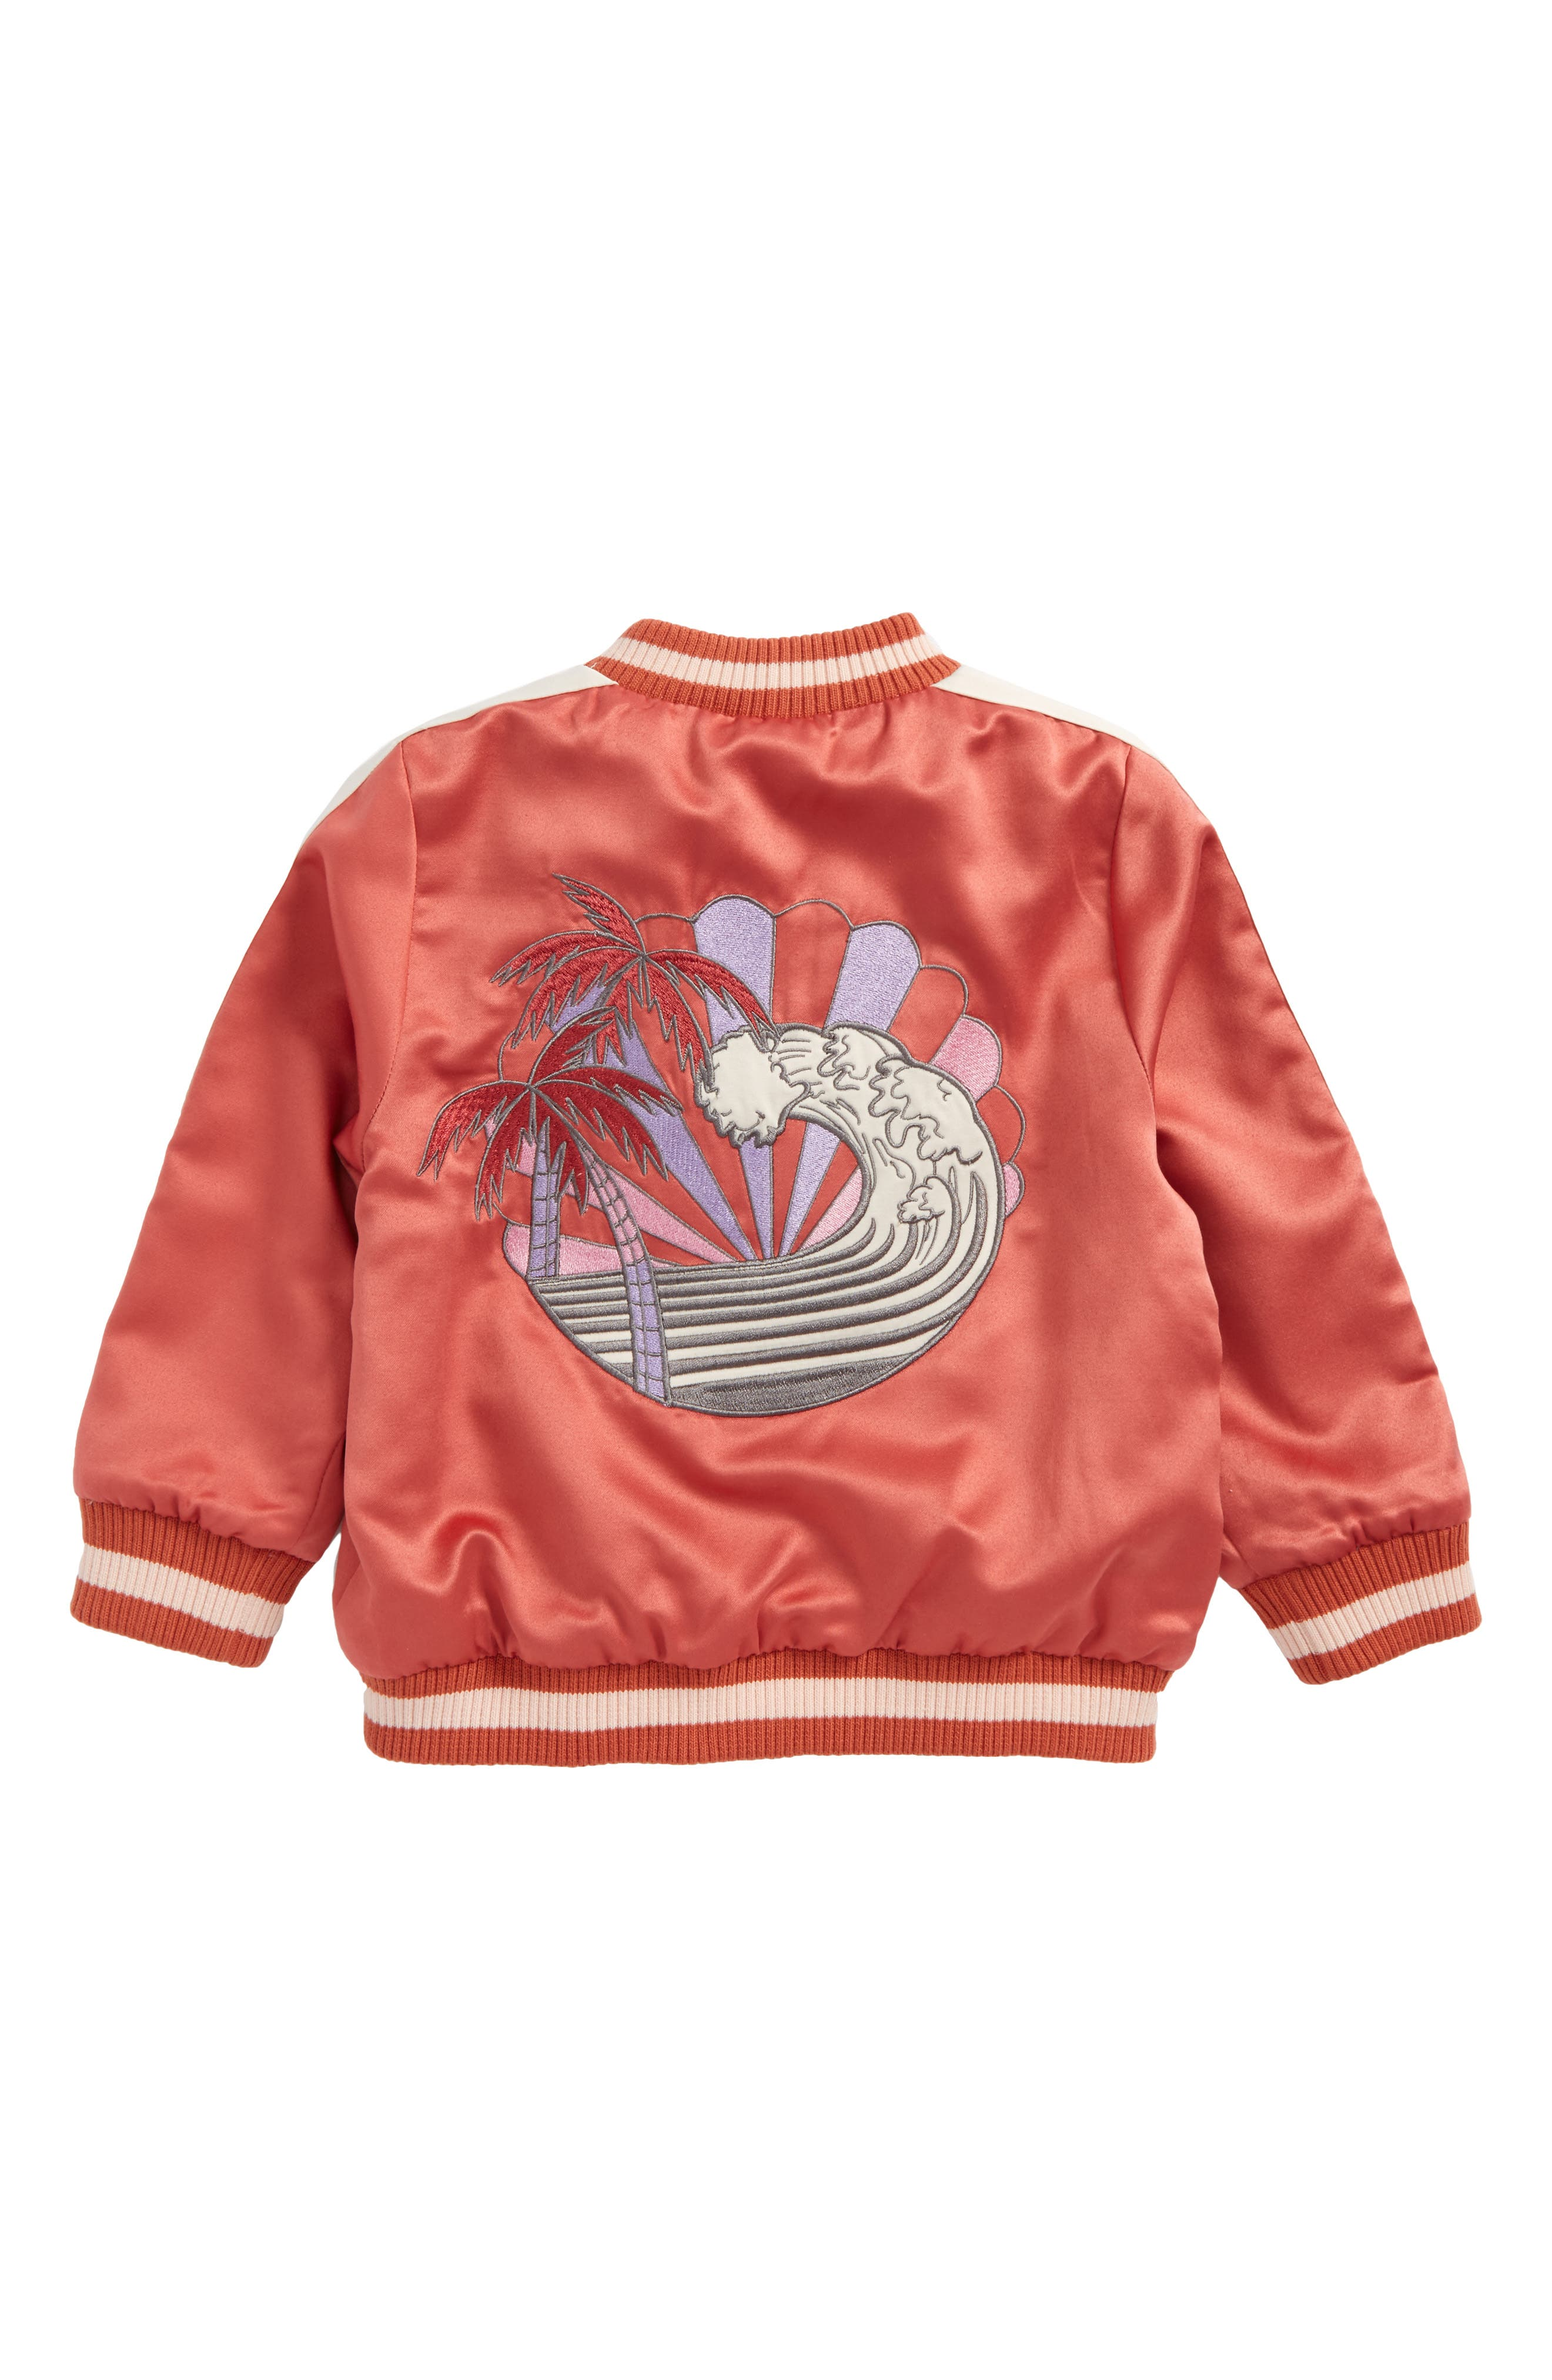 Willow Embroidered Reversible Bomber Jacket,                             Alternate thumbnail 3, color,